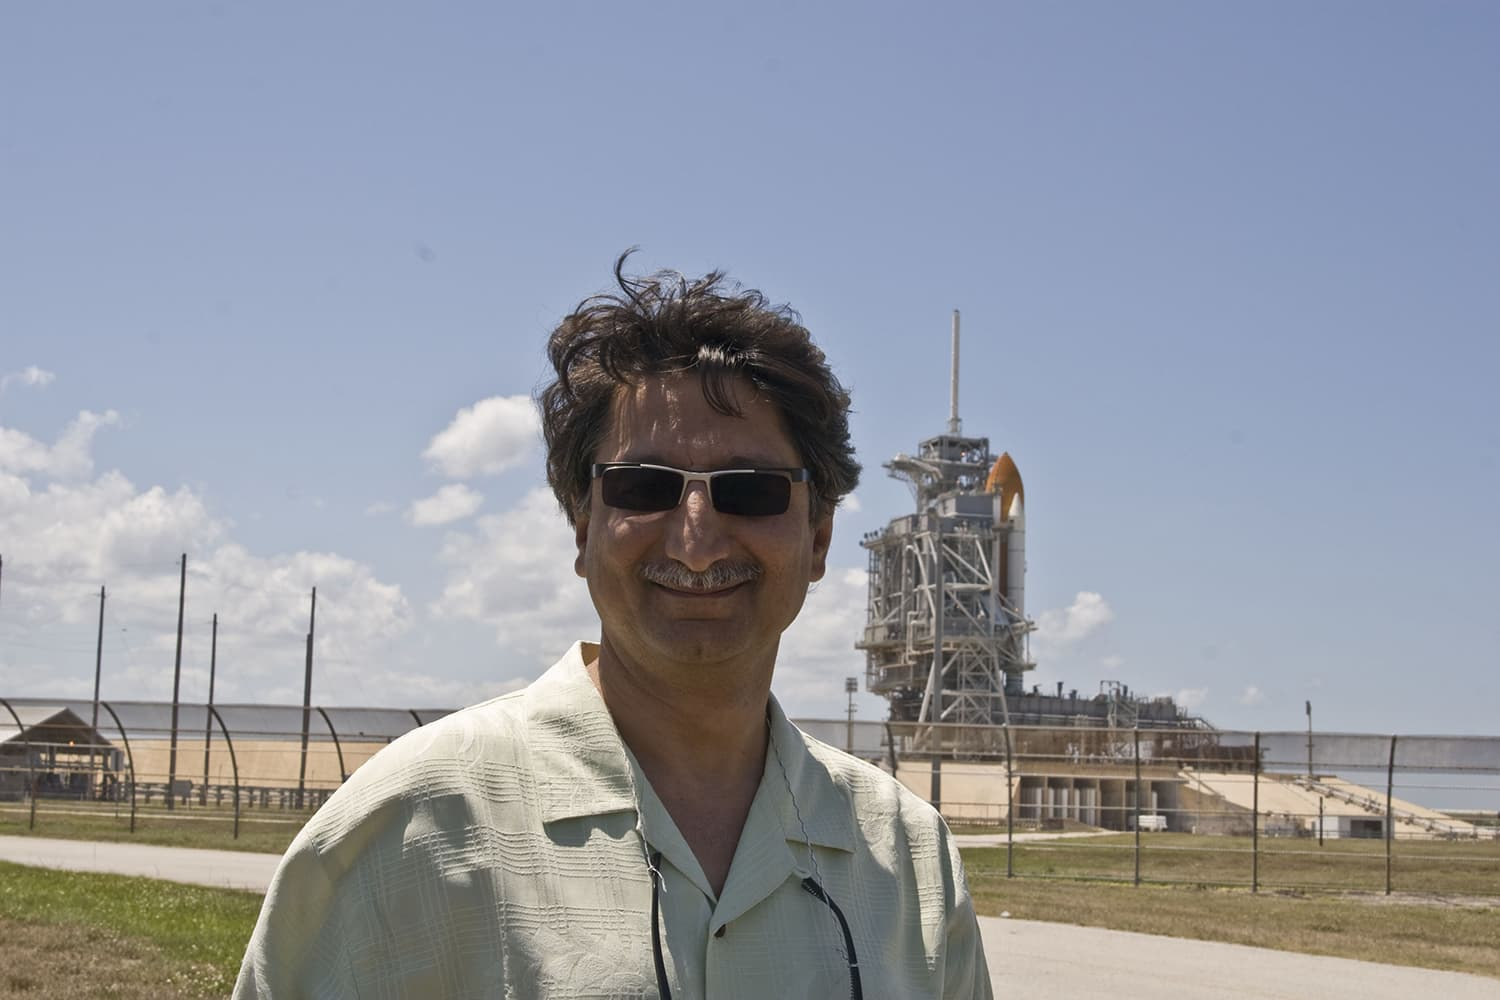 A peek into the life and work of Pakistani astrophysicist at NASA, Mansoor Ahmed